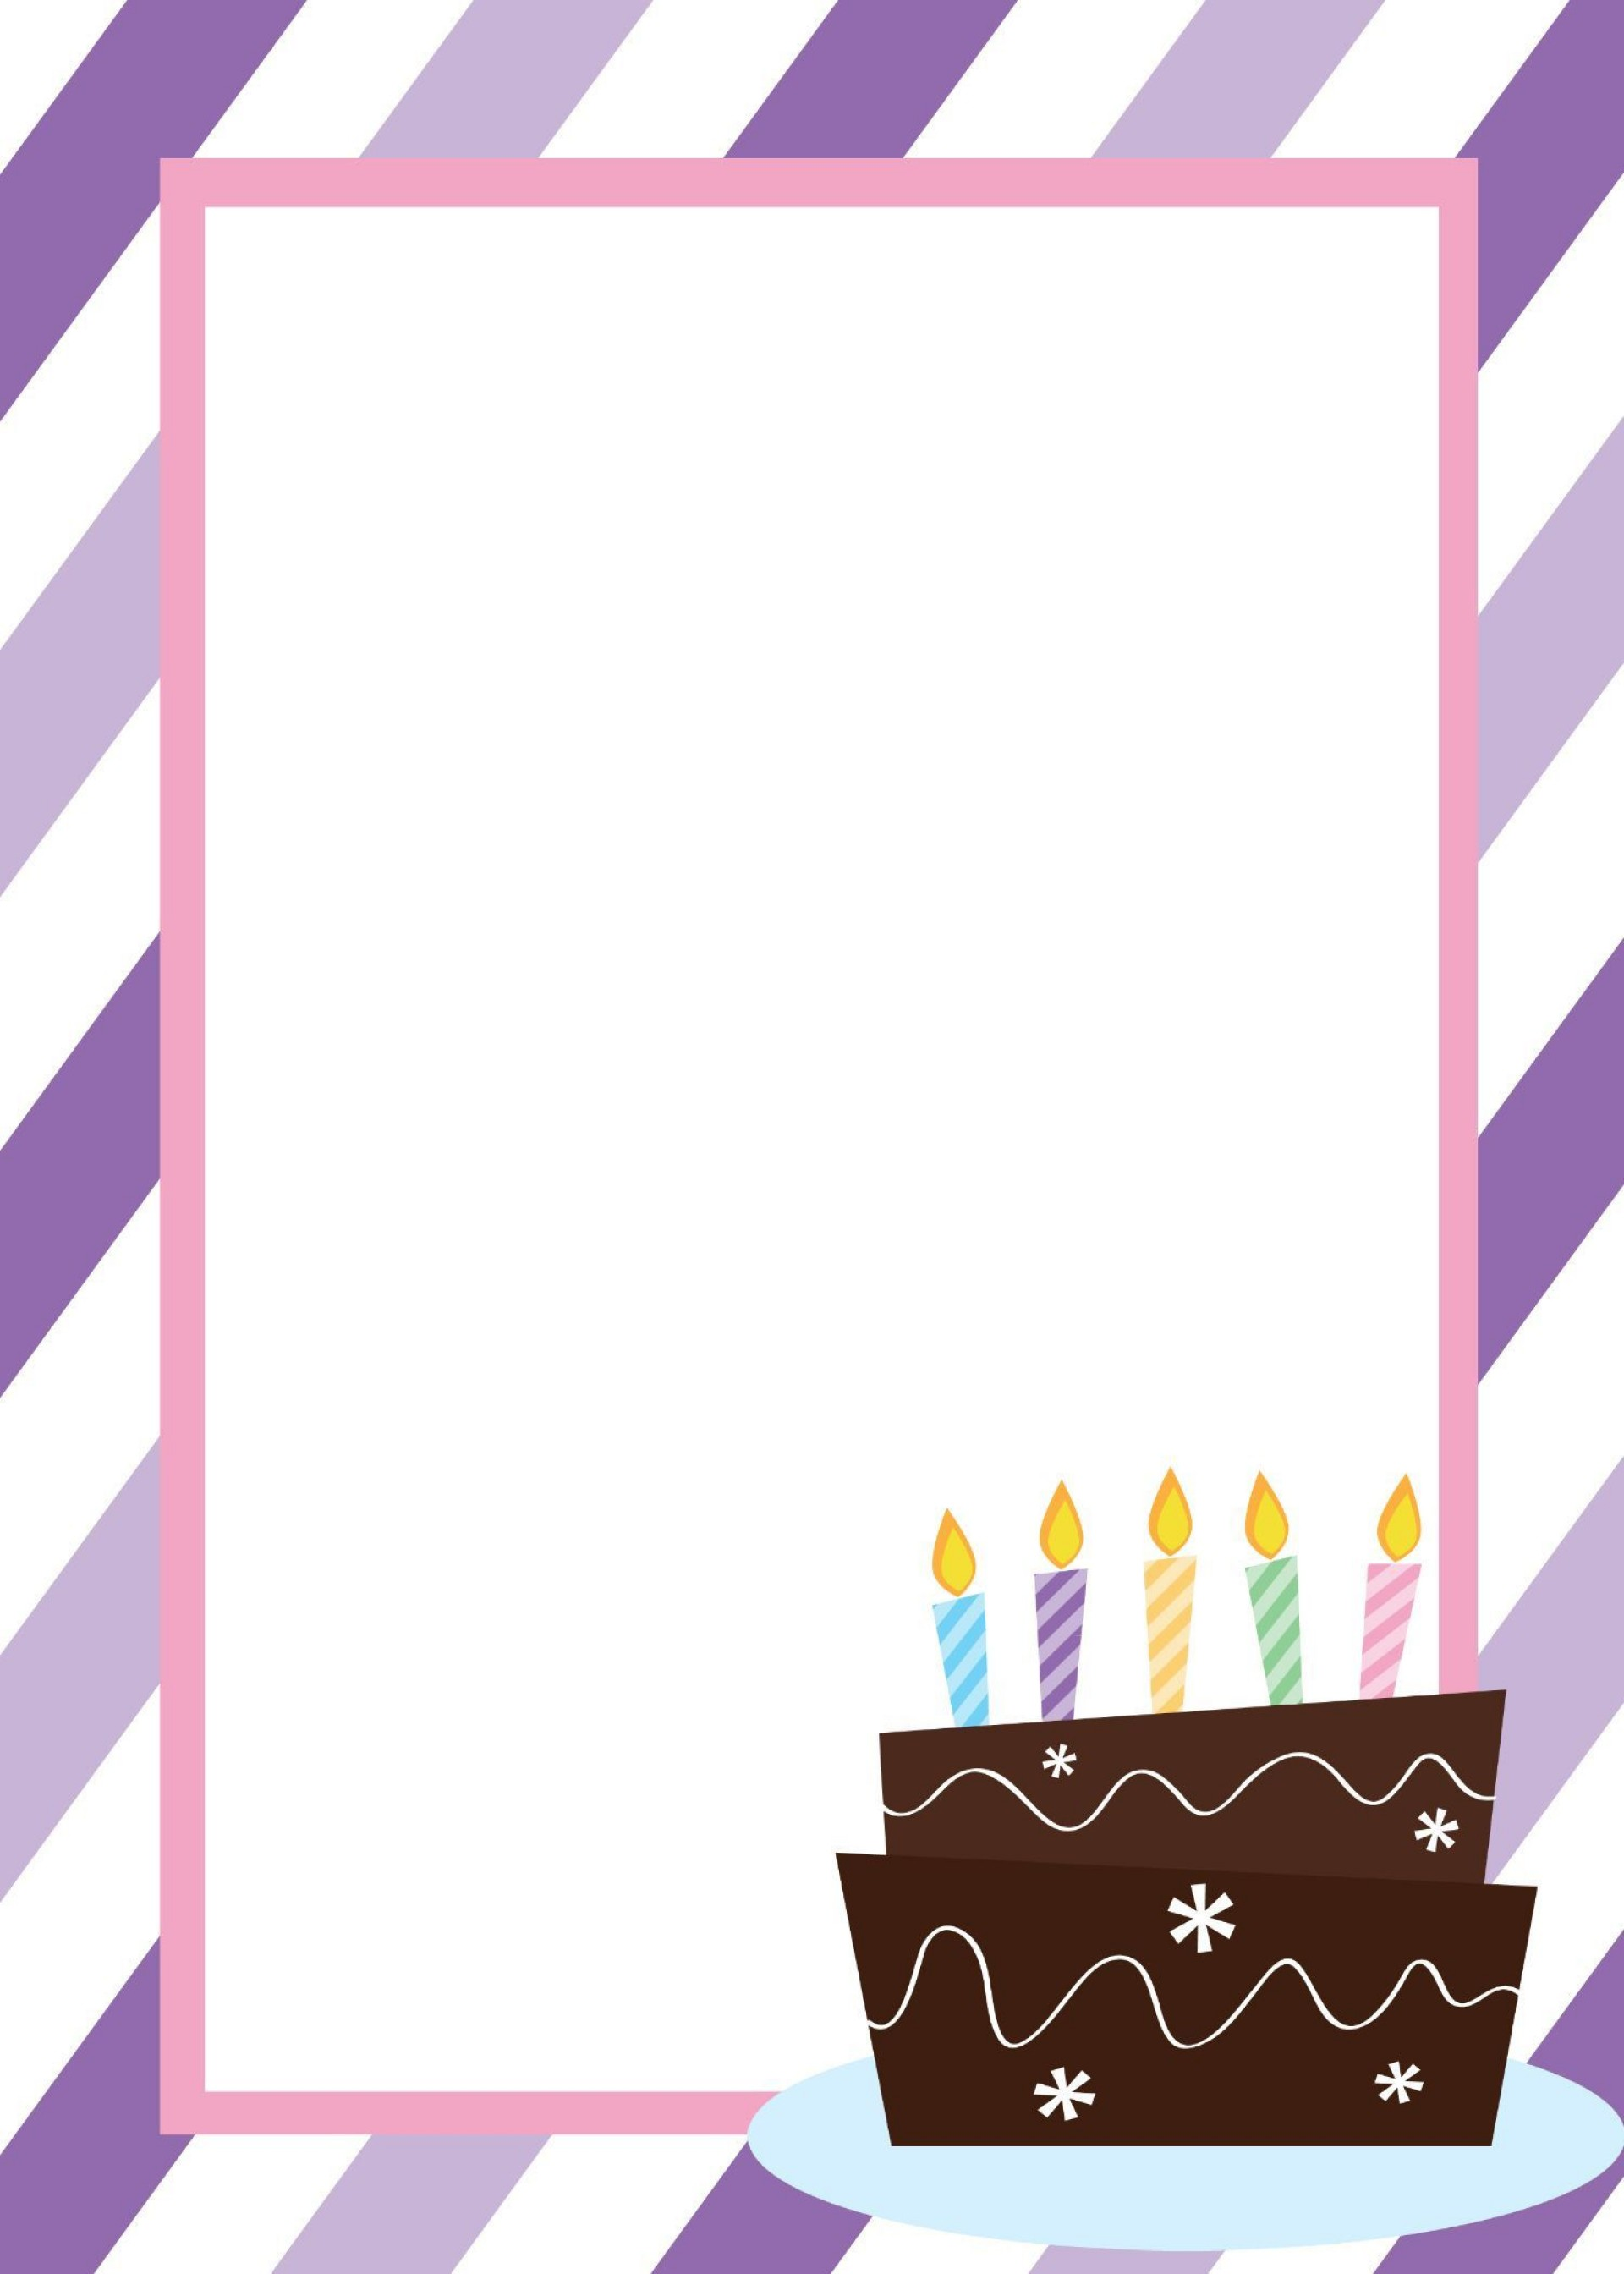 009 Remarkable Free Birthday Card Invitation Template Printable Highest Quality 1920